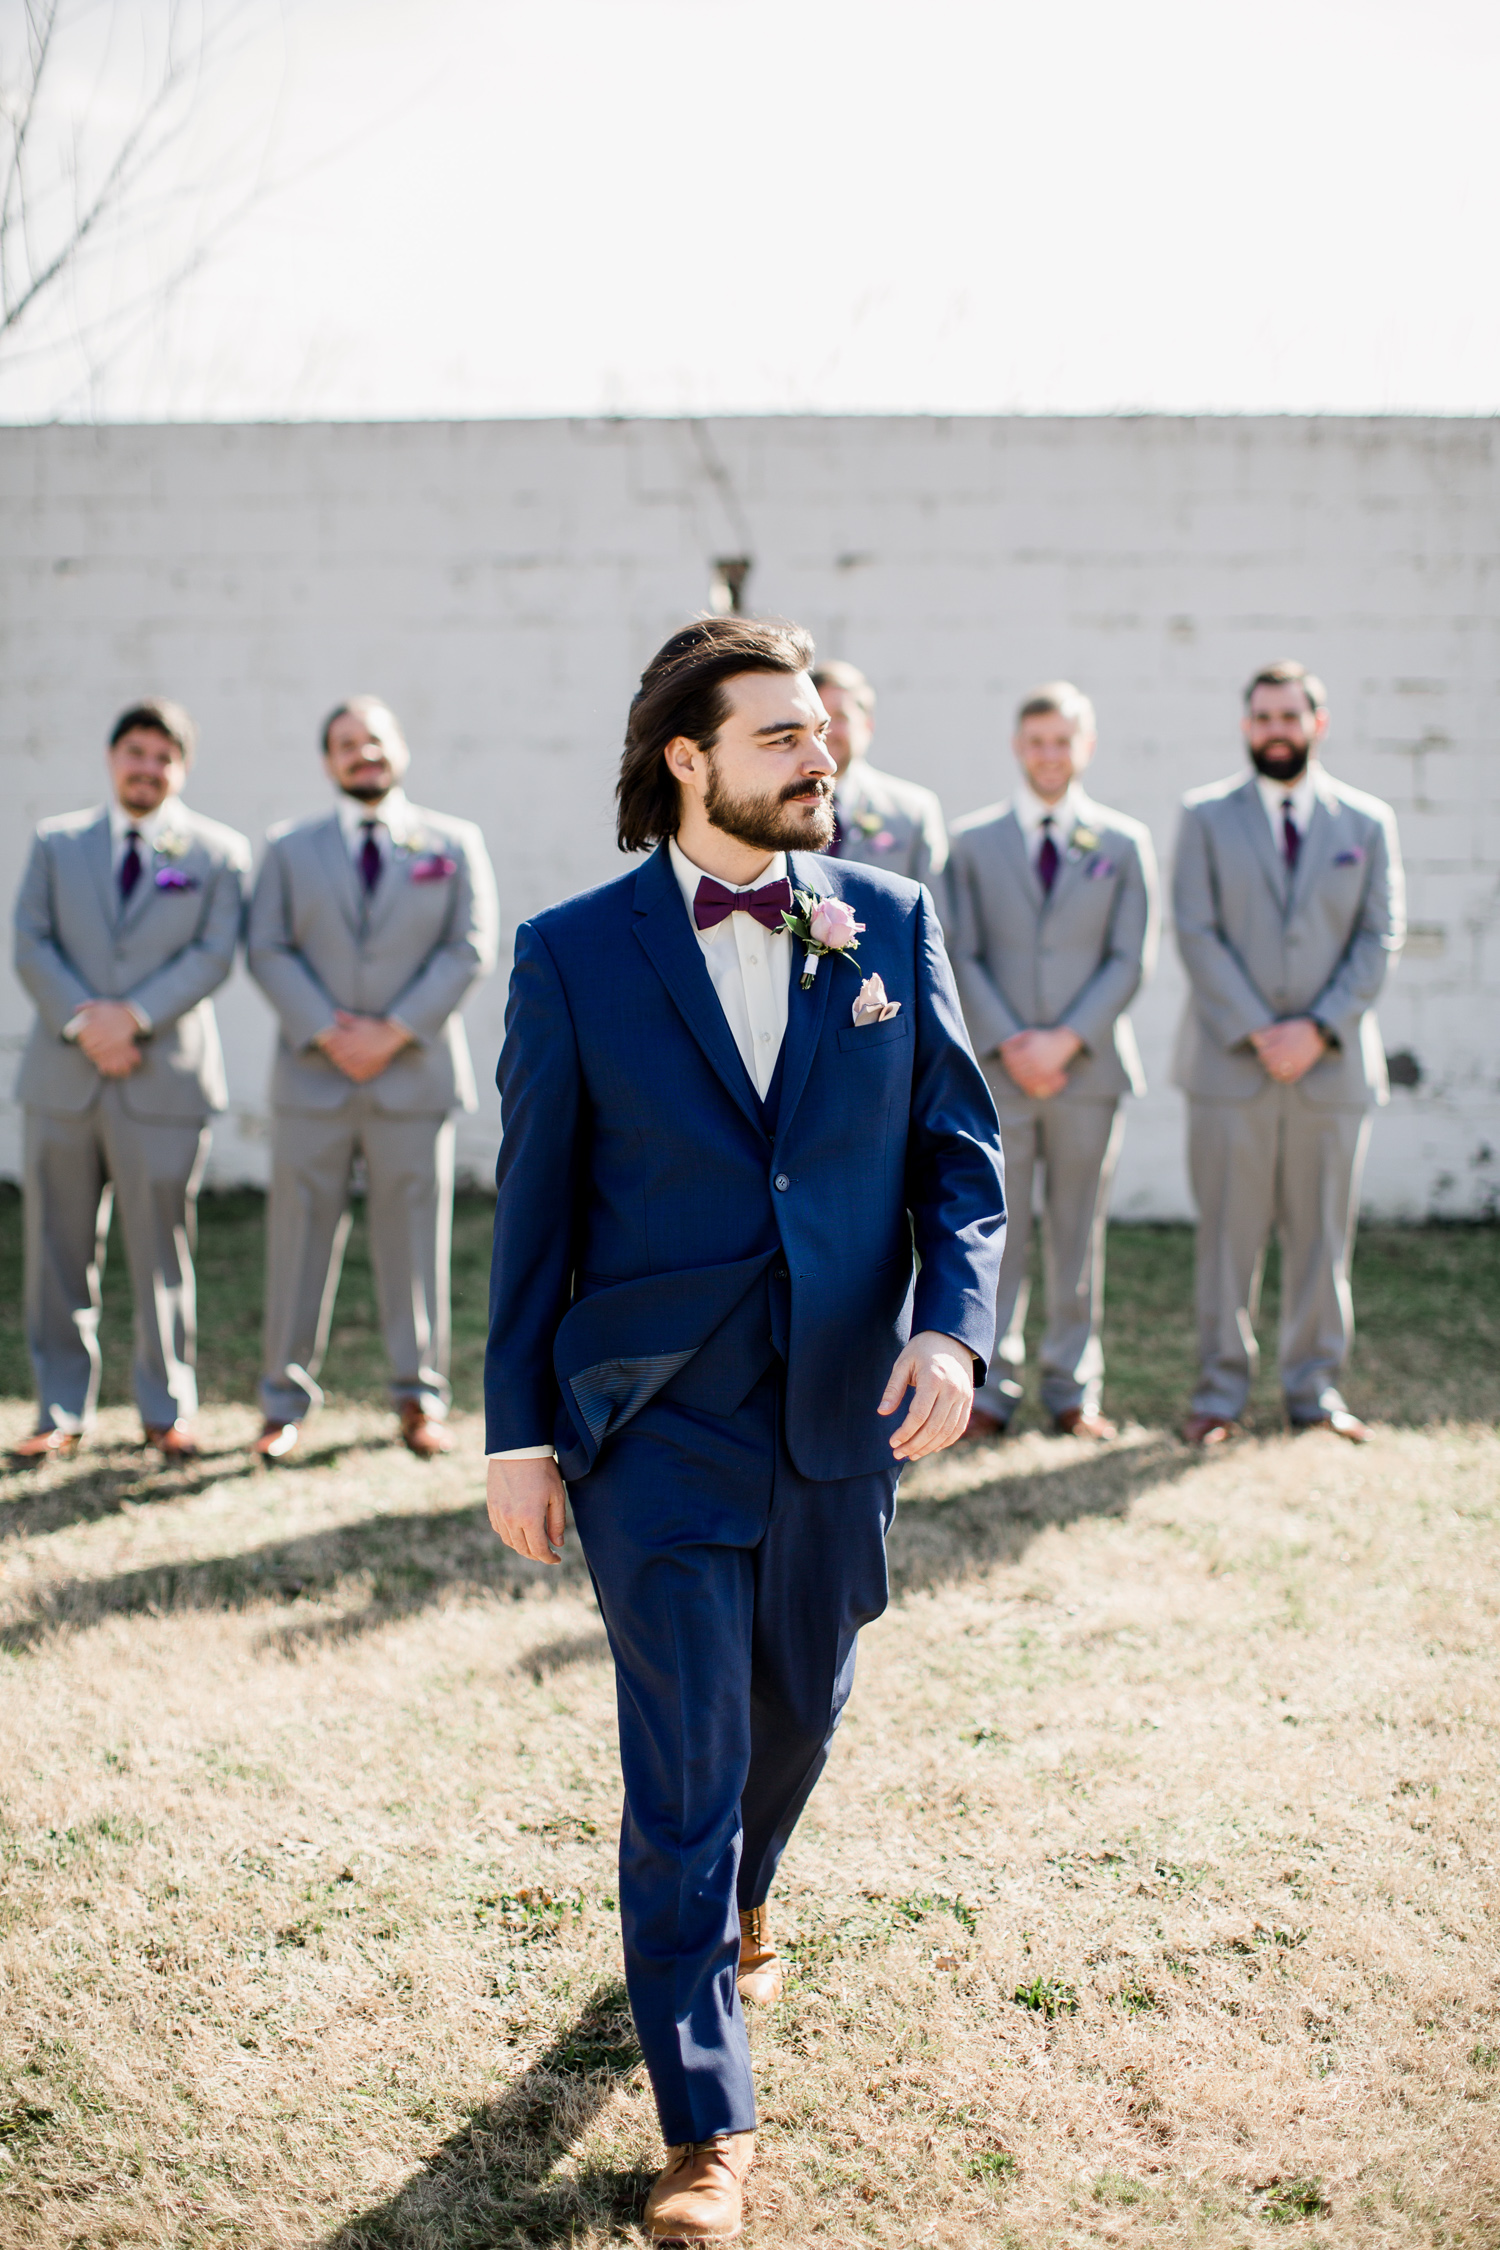 Downtown Knoxville Wedding Venue // Central Avenue Reception // Groom Portrait Outdoors